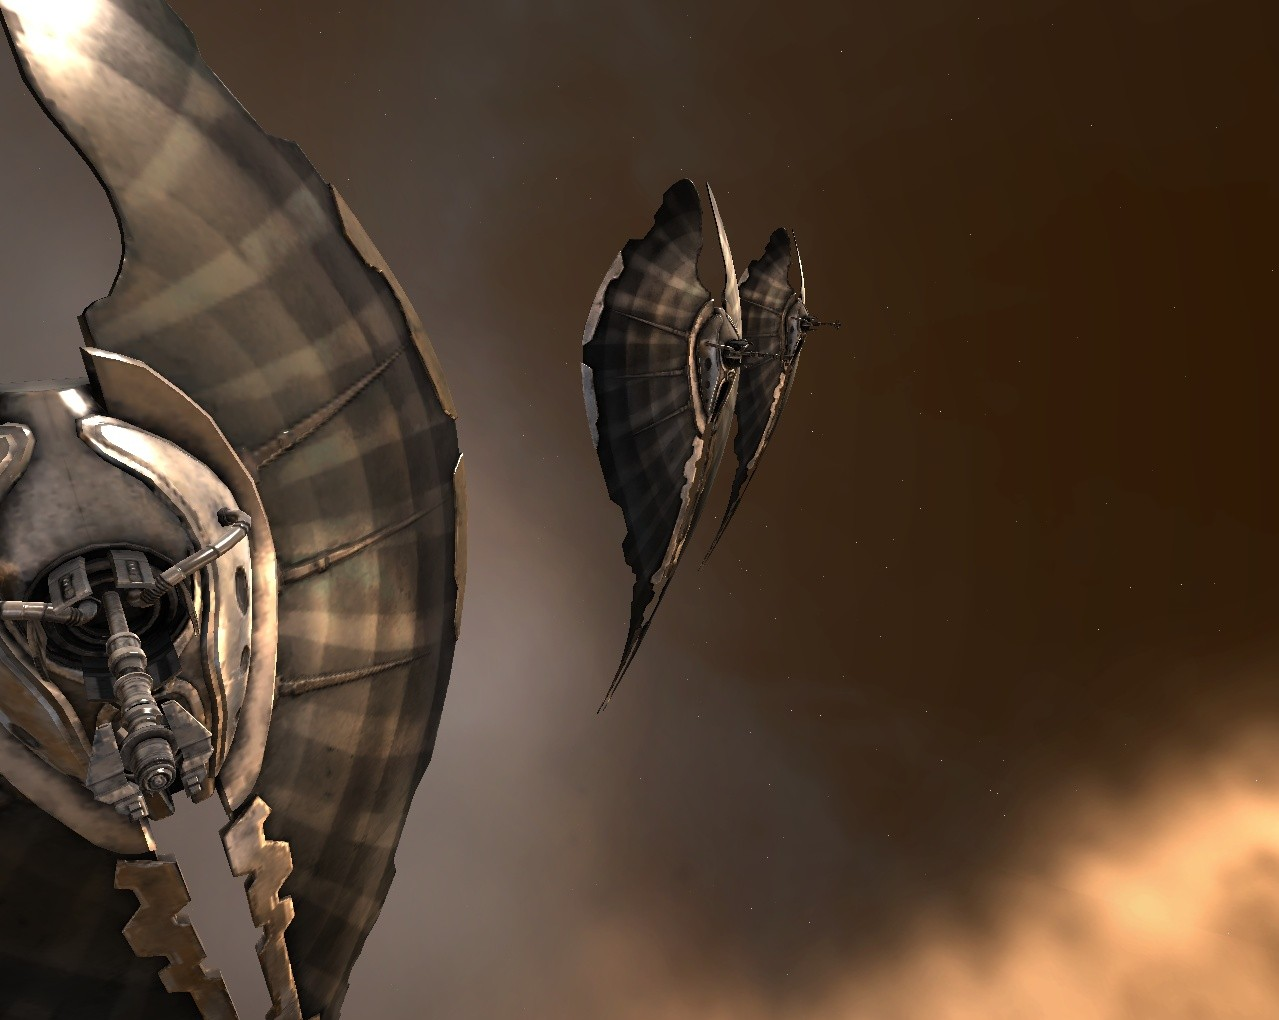 EVE Online - Good looking Sentry Drones